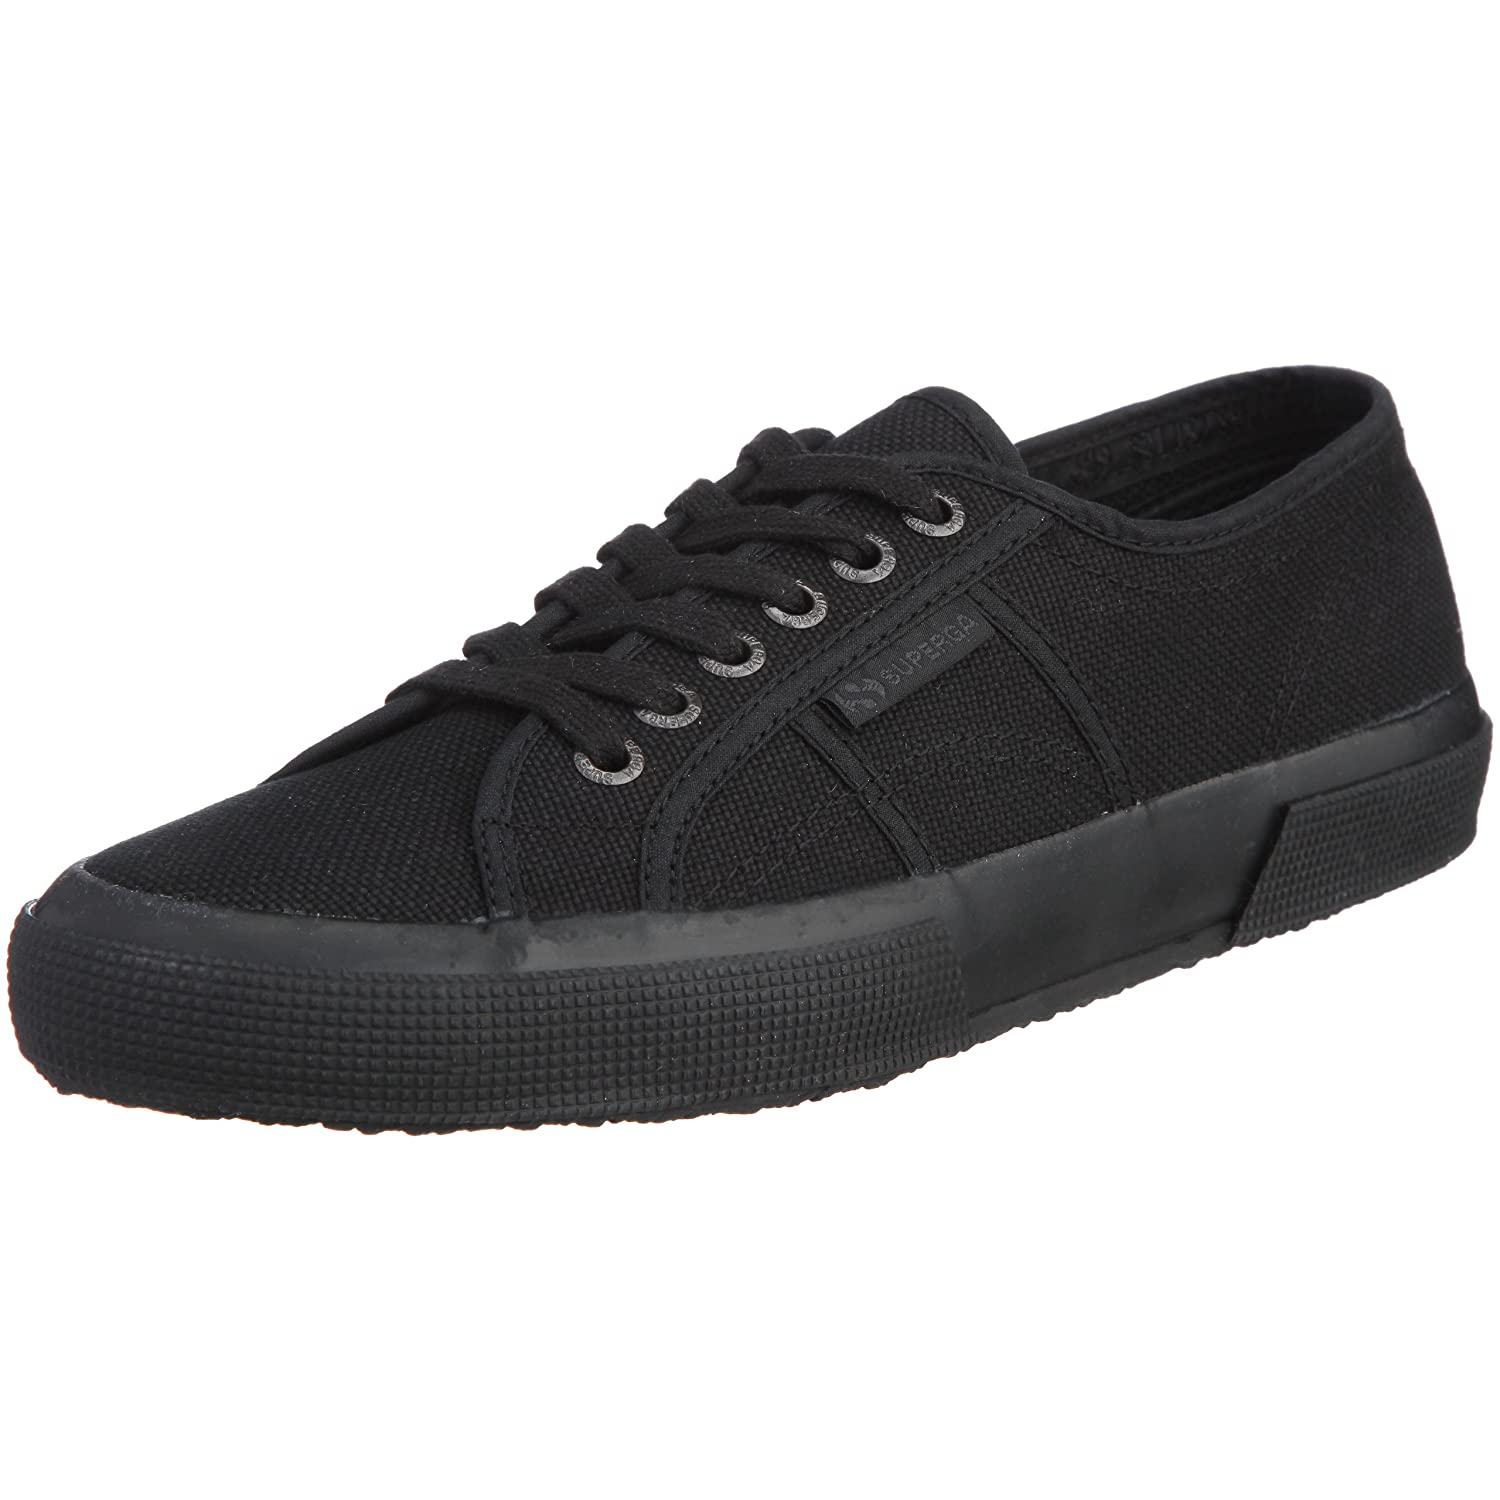 Superga Women's 2750 Cotu Sneaker B002WQ01CM 10.5 B(M) US|Total Black